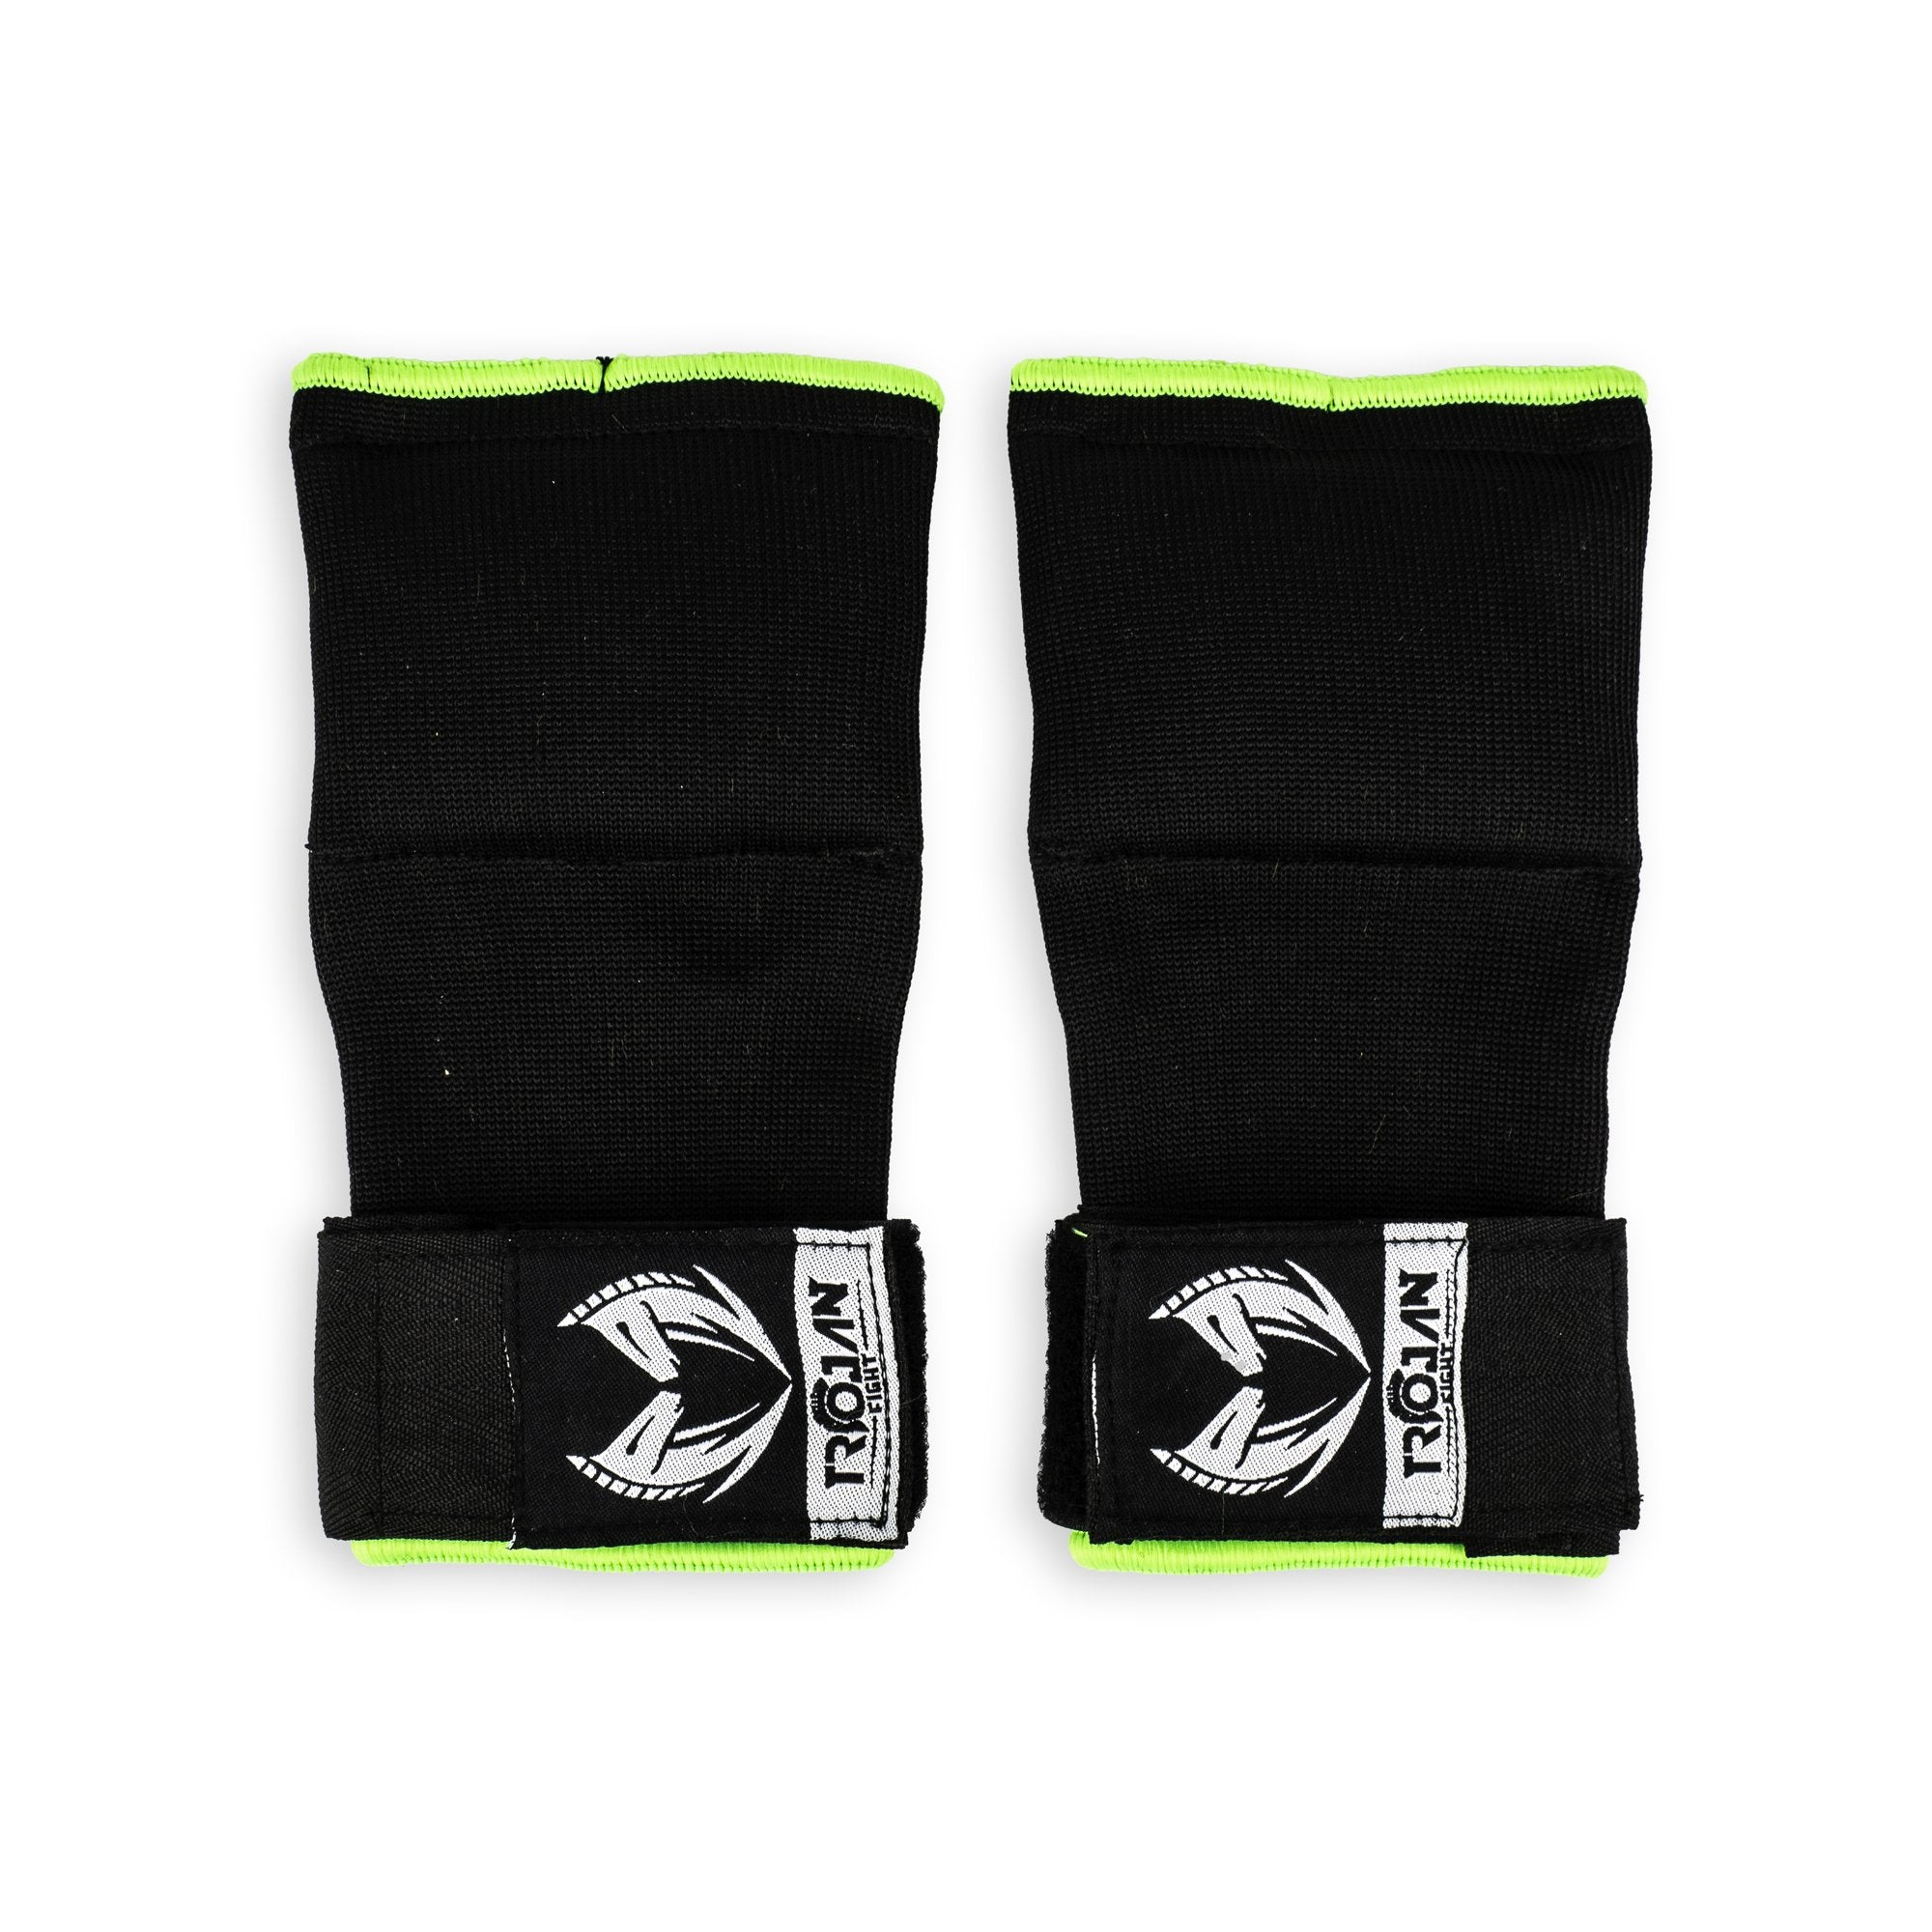 KONTACT GEL | GLOVE WRAPS